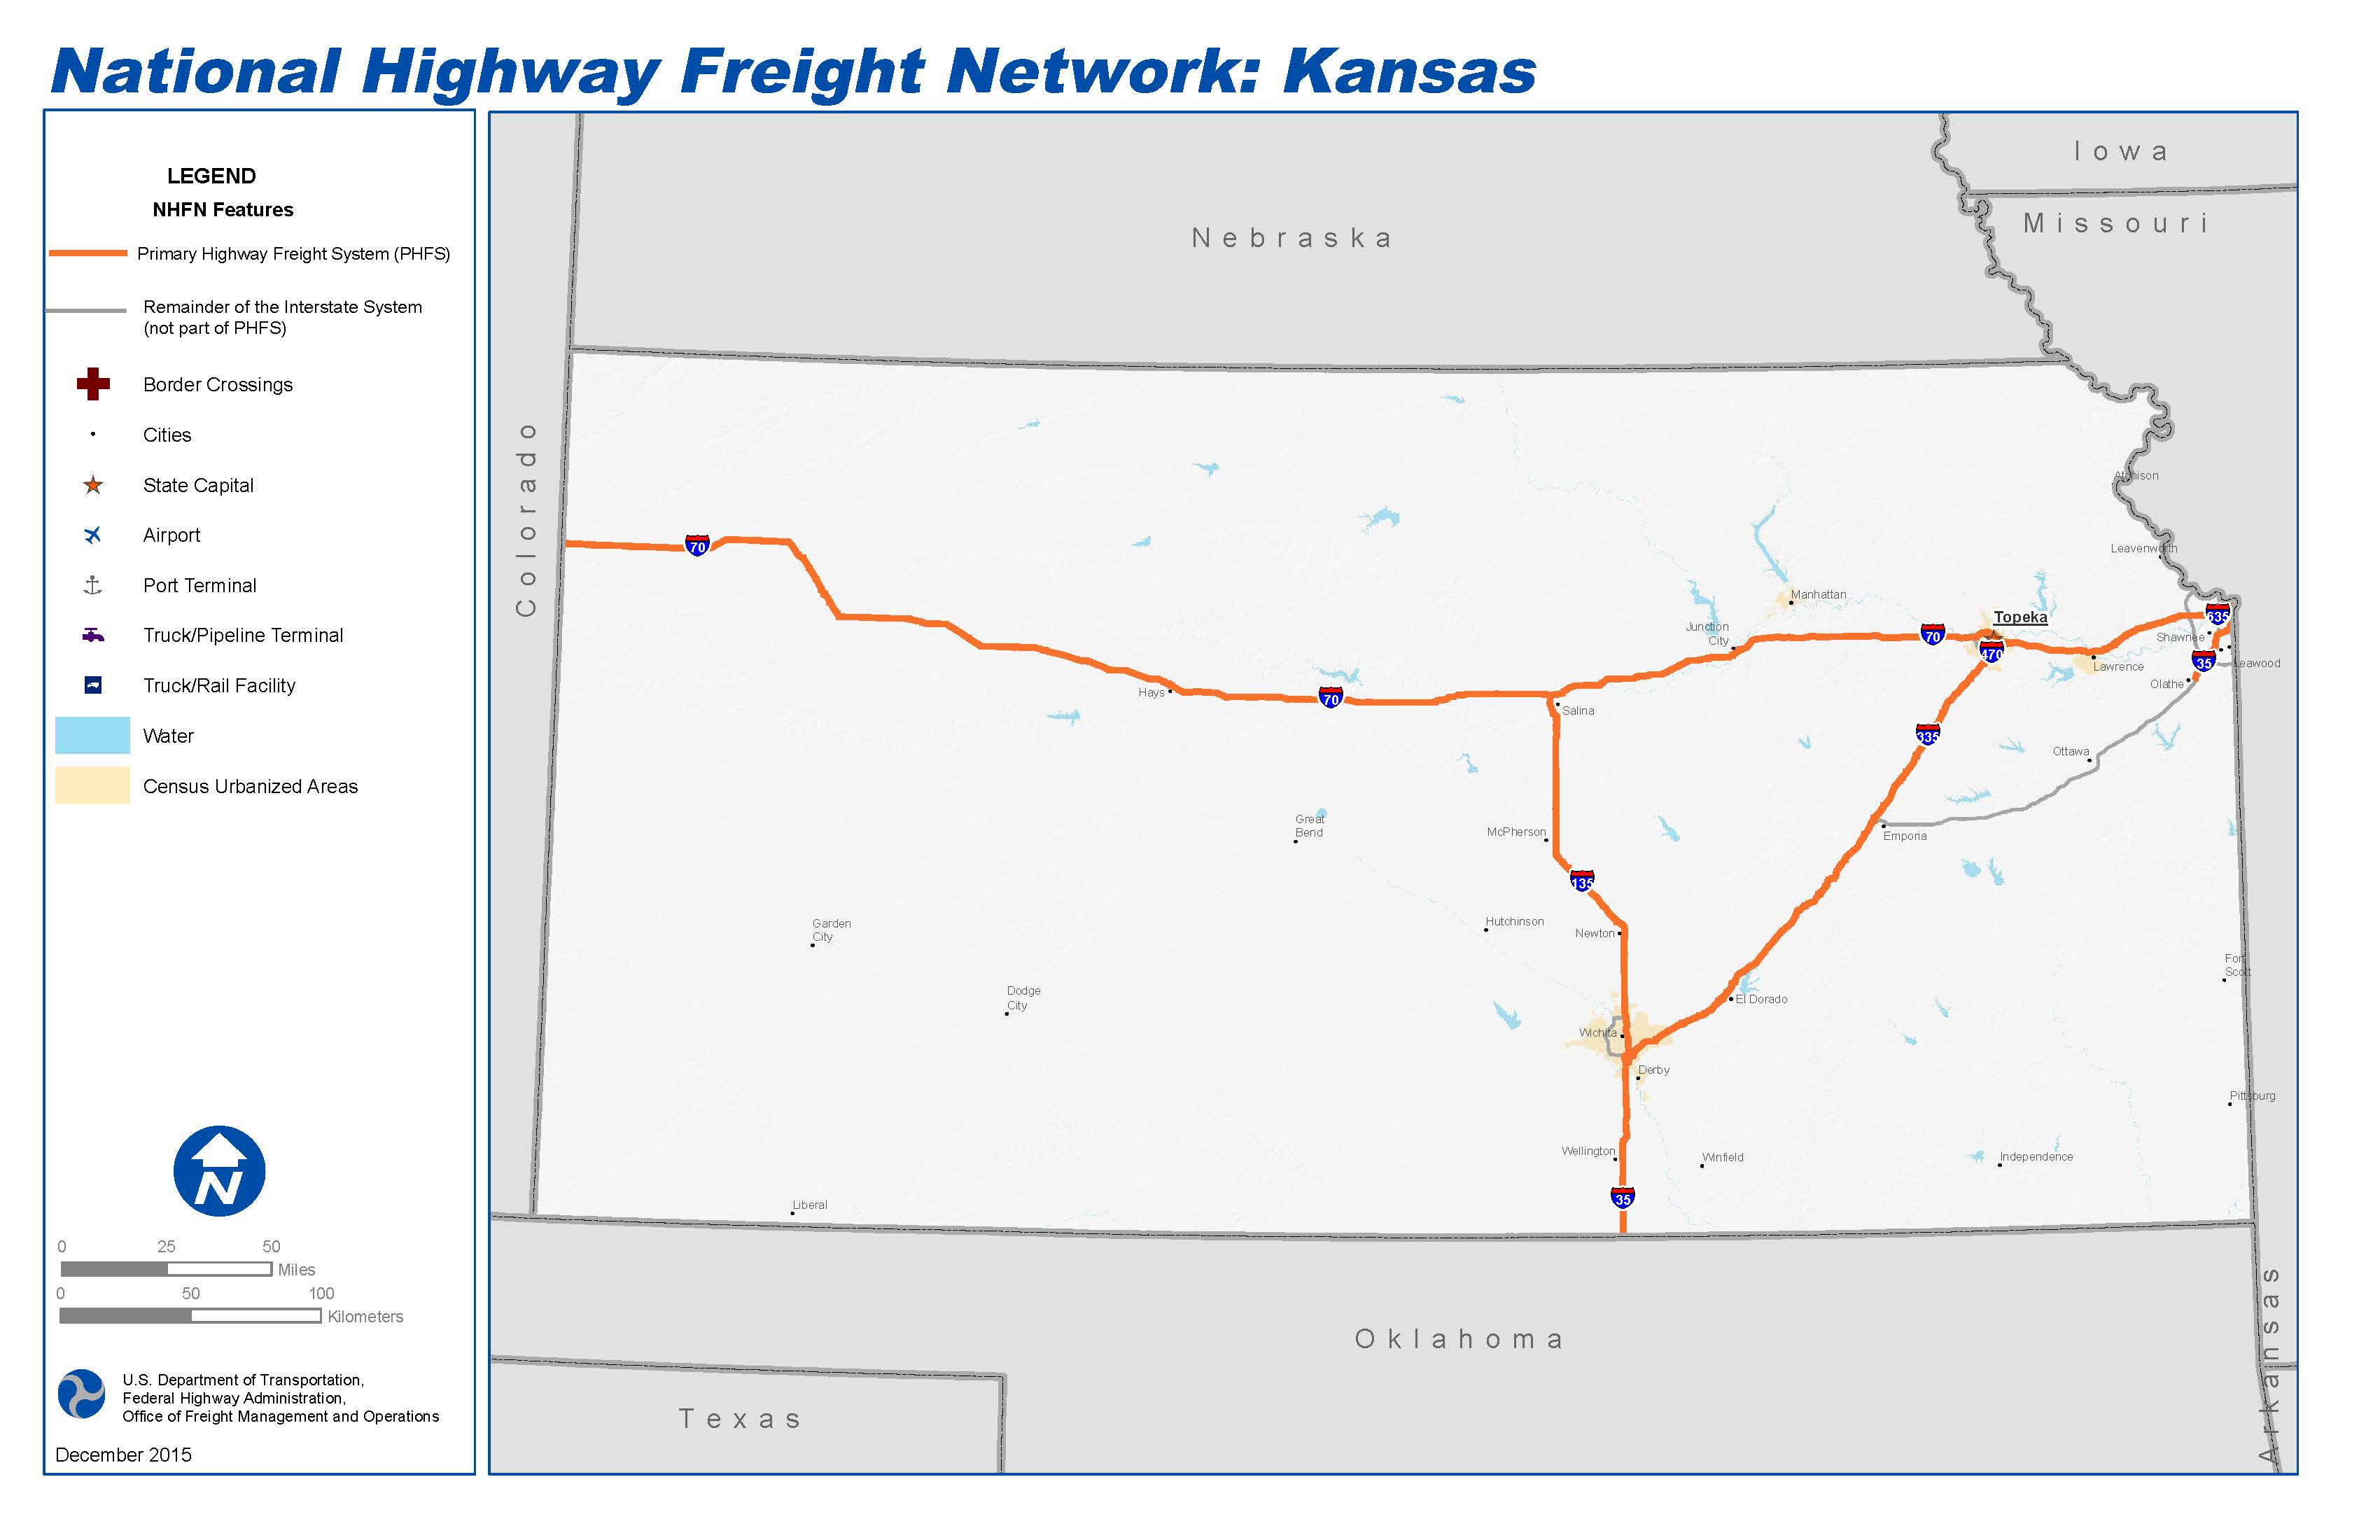 National Highway Freight Network Map and Tables for Kansas FHWA